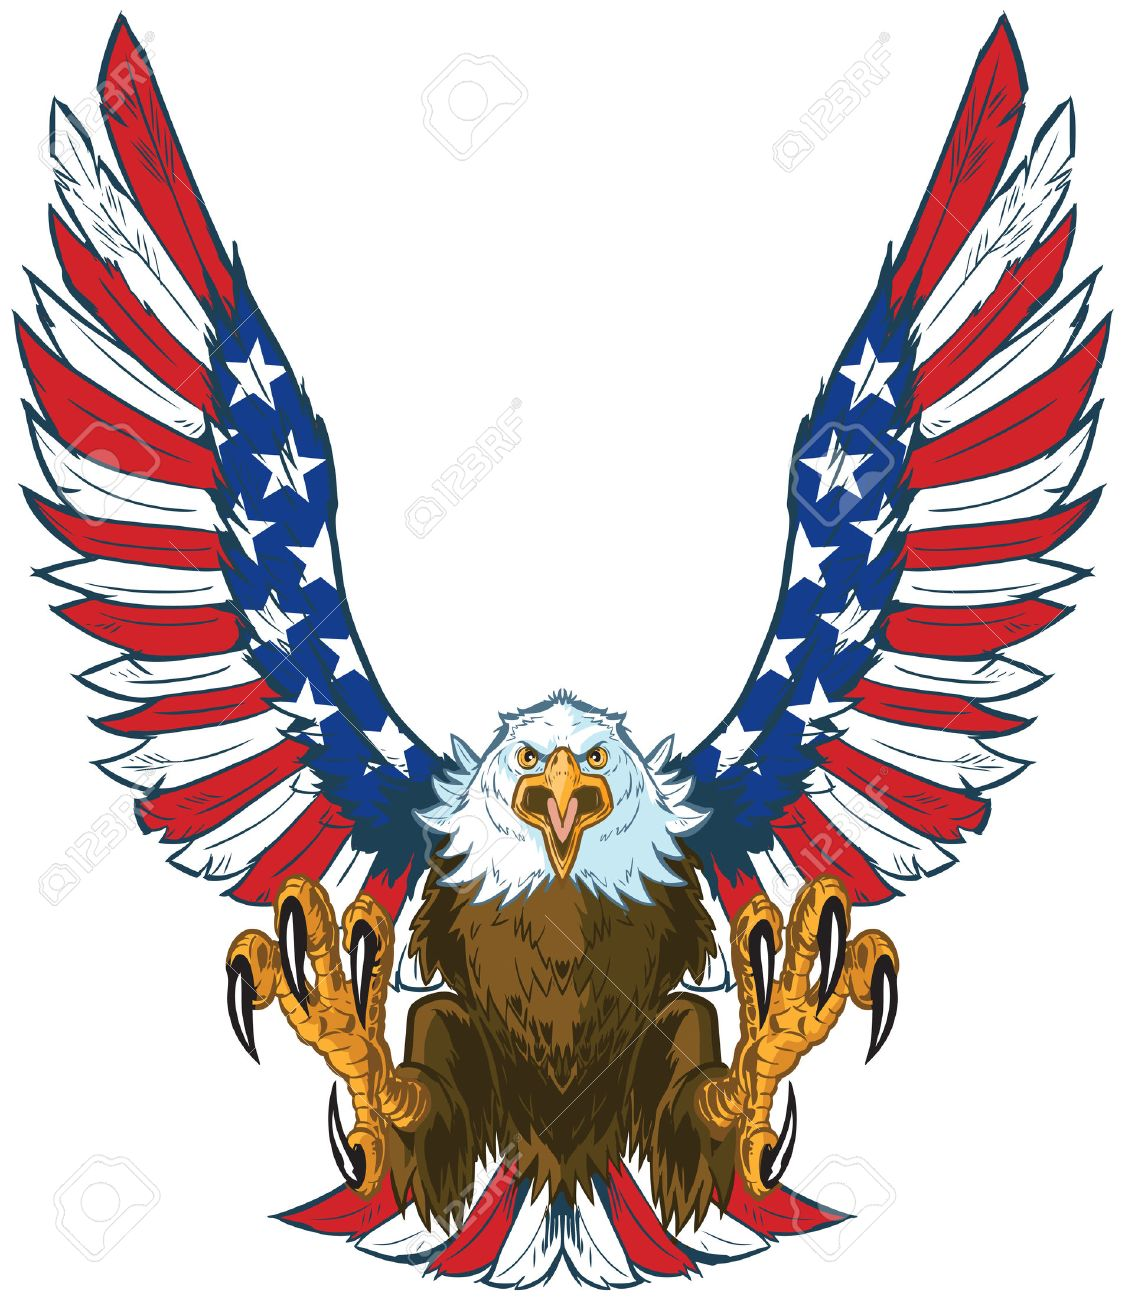 38 522 eagle stock vector illustration and royalty free eagle clipart rh 123rf com flying eagle clipart png free flying eagle clipart